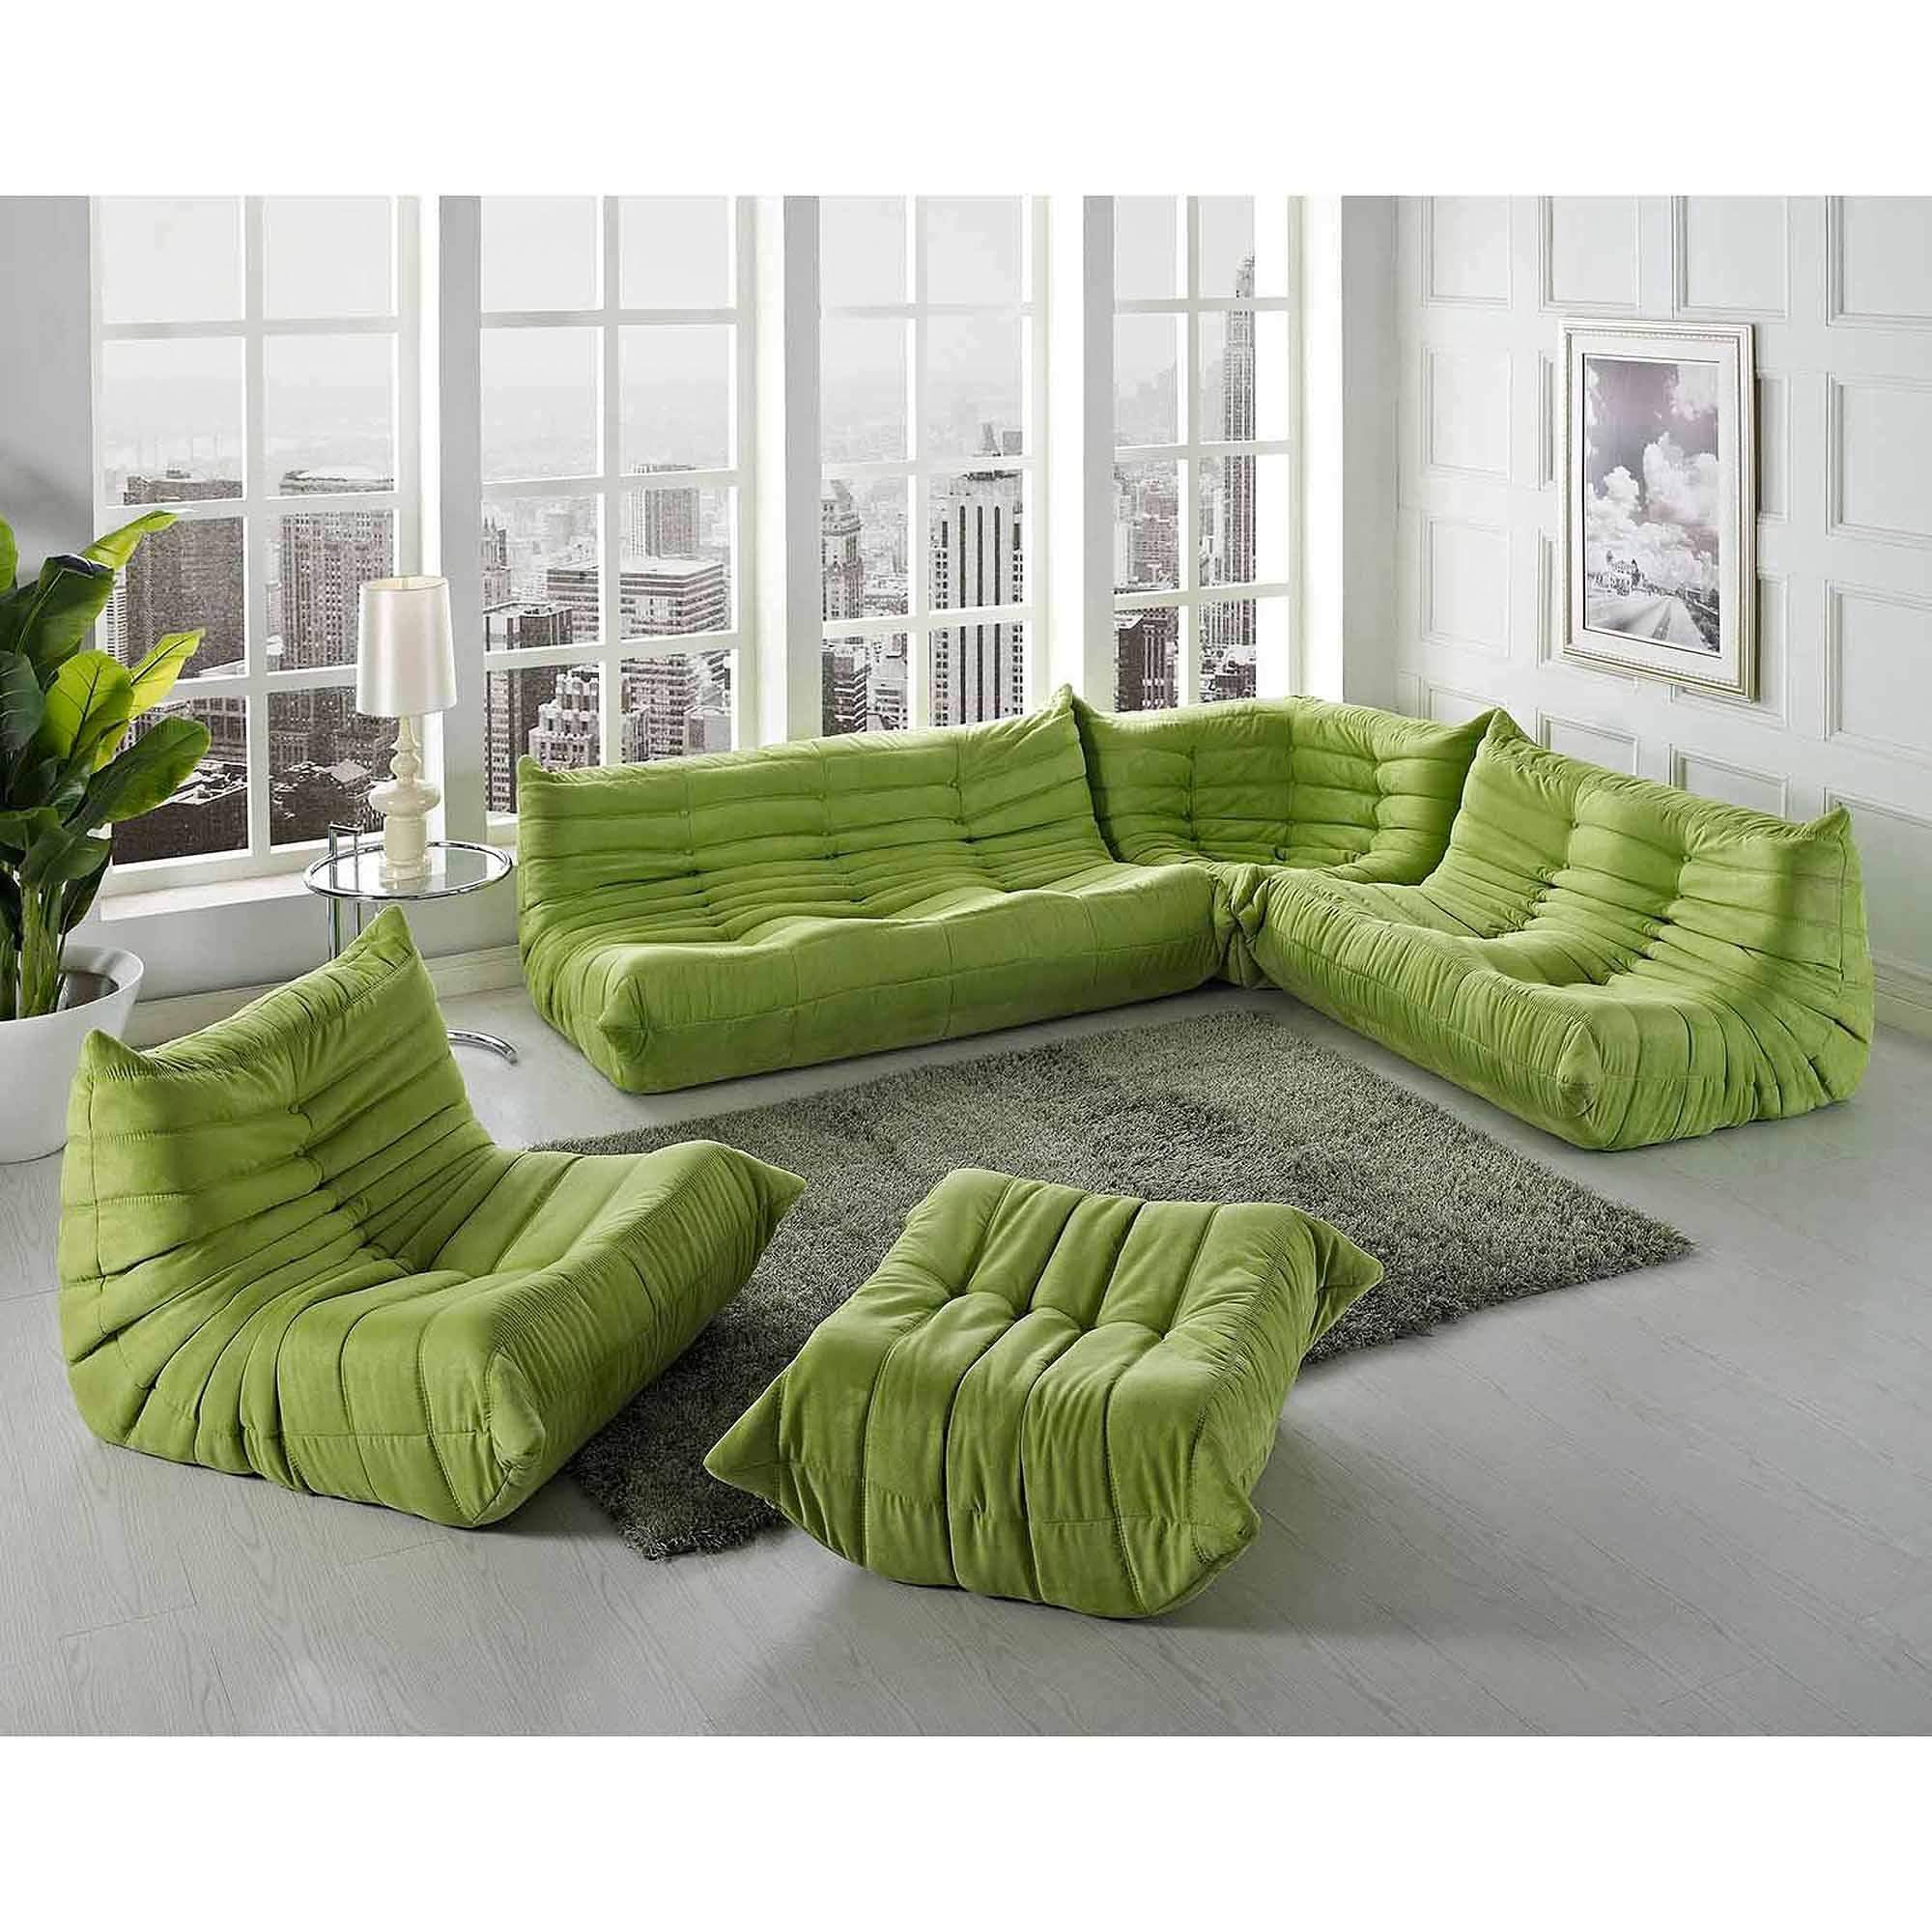 Modway Waverunner Modular Sectional Sofa Set (5 Piece) – Walmart With Green Leather Sectional Sofas (View 17 of 20)